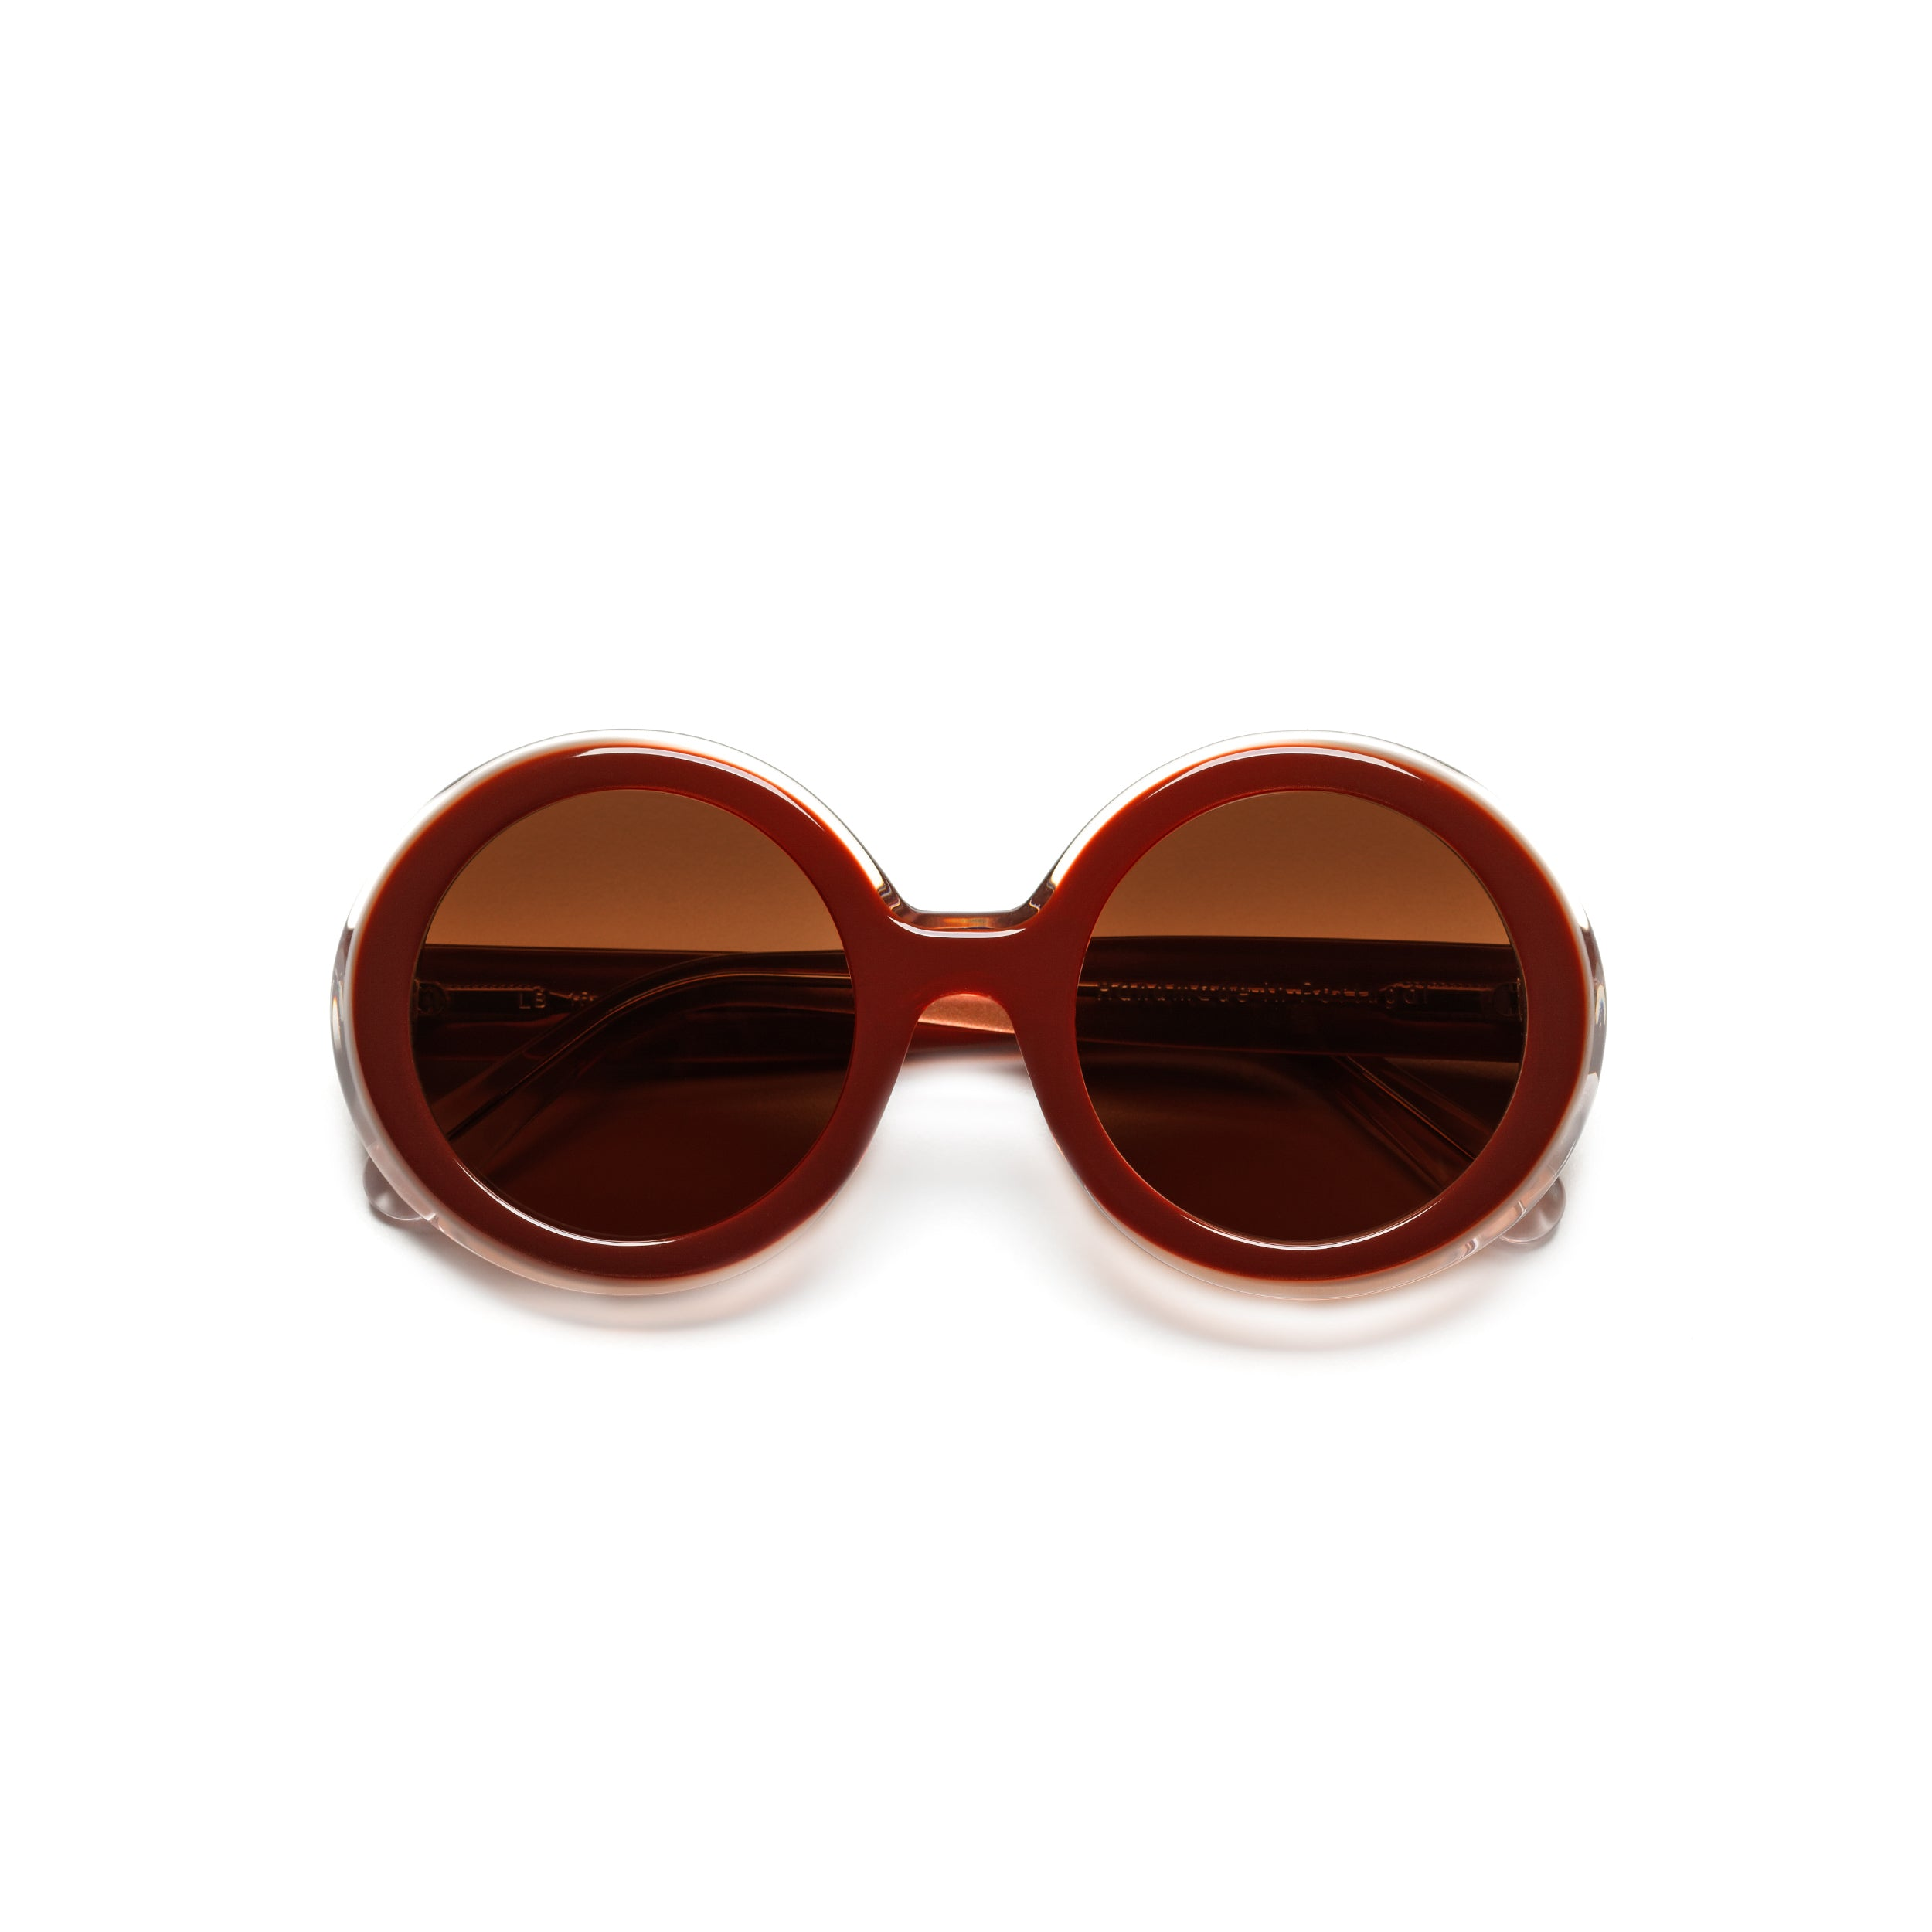 Sunglasses 18-17 C44